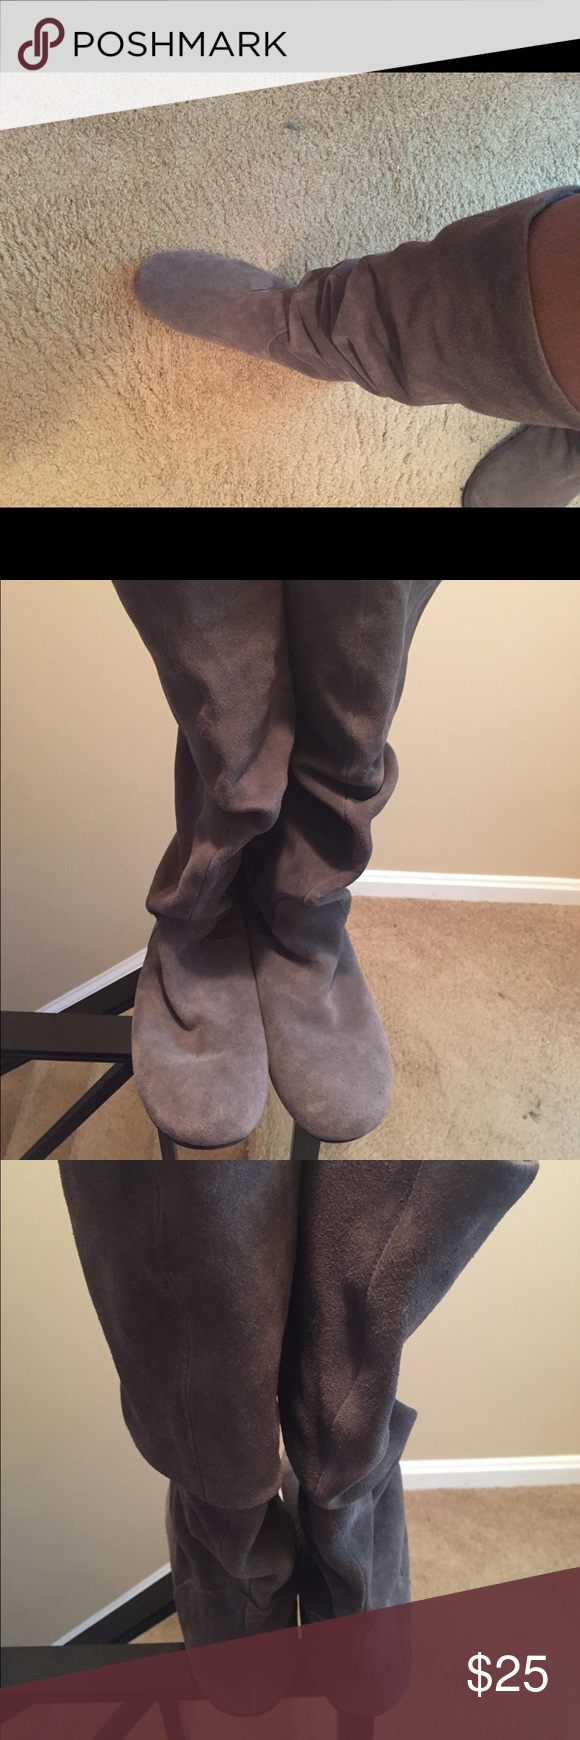 Gray Suede Mid Calf Boots Gray Suede Mid Calf Boots Size 9.5. Good condition. Minor scuffs from wear. Worn 5x. No Trades. I do not have the original box. Shoes